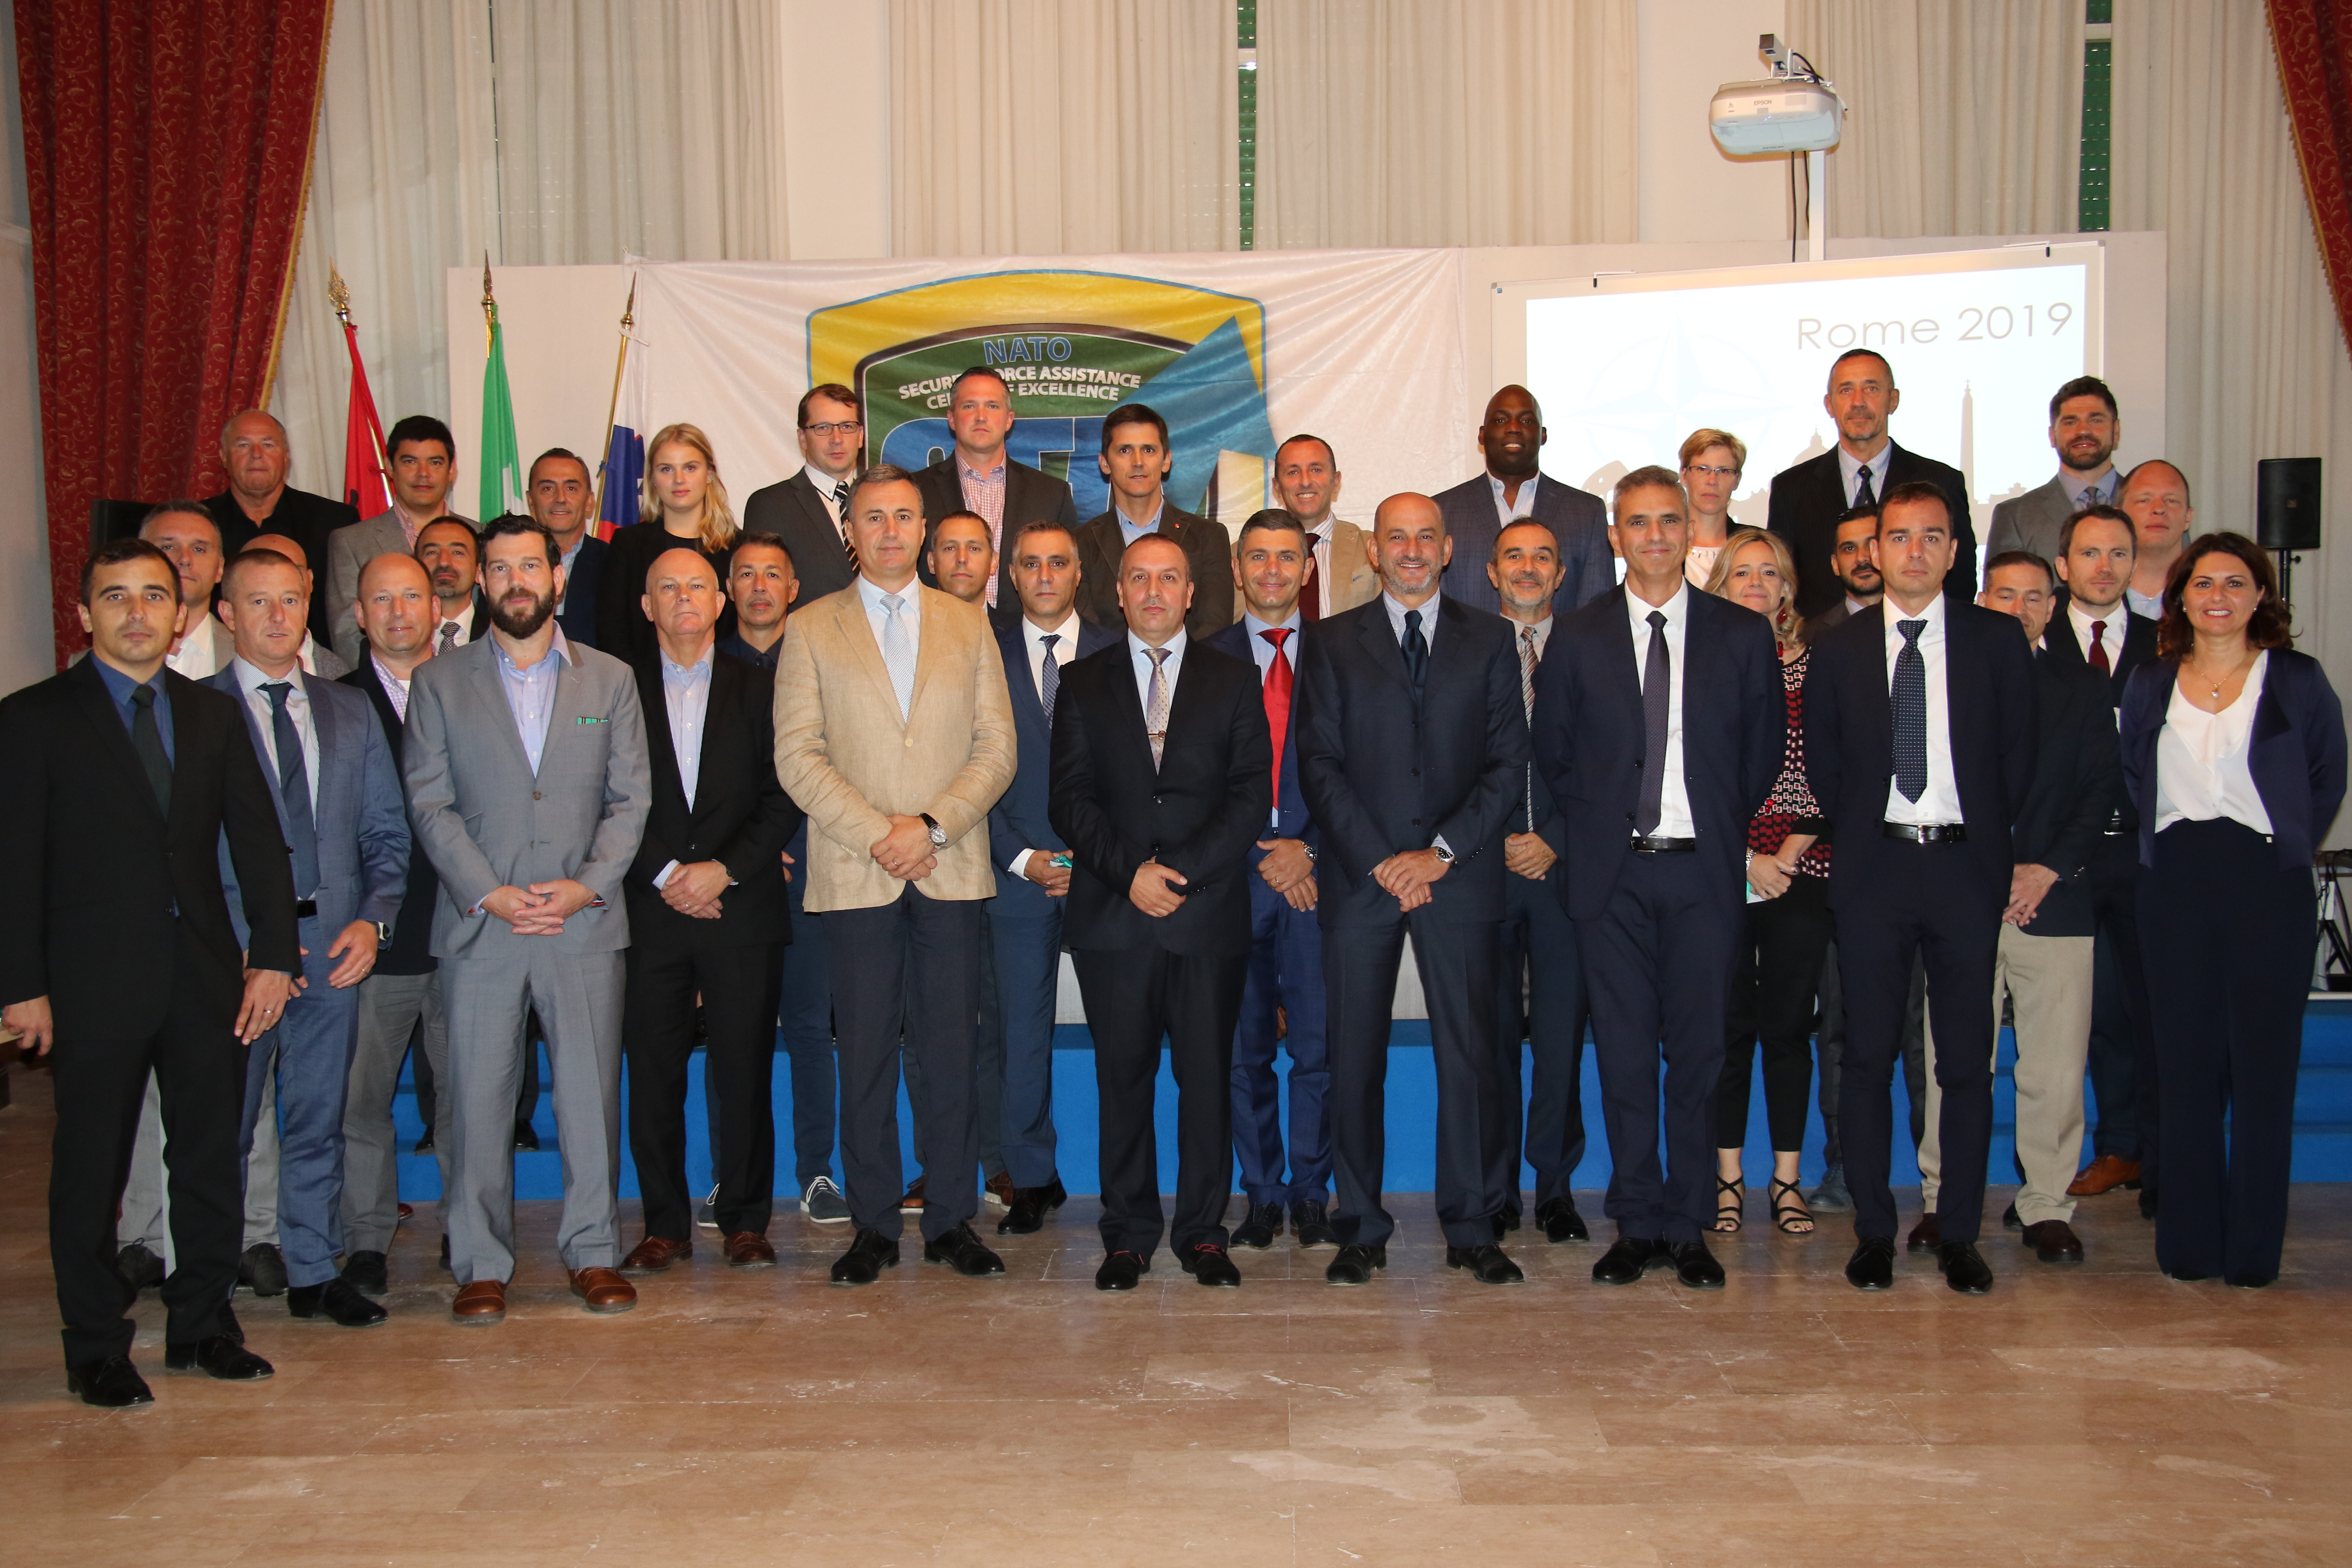 NATO SFA COE: 1st Lessons Learned Workshop concluded